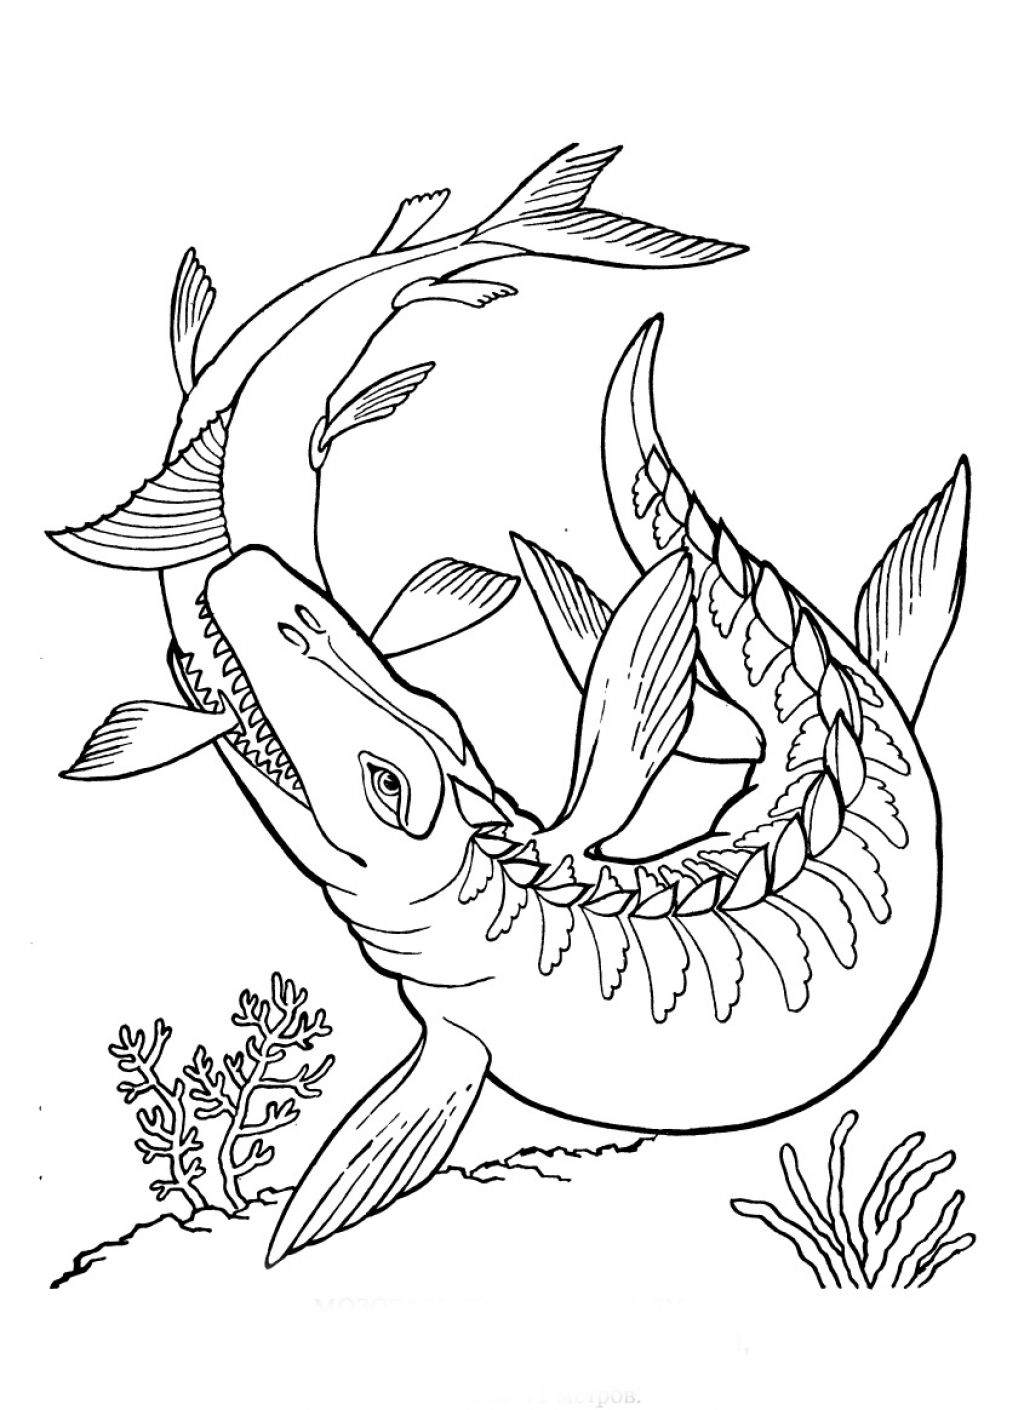 Jurassic Park 15959 Movies Printable Coloring Pages